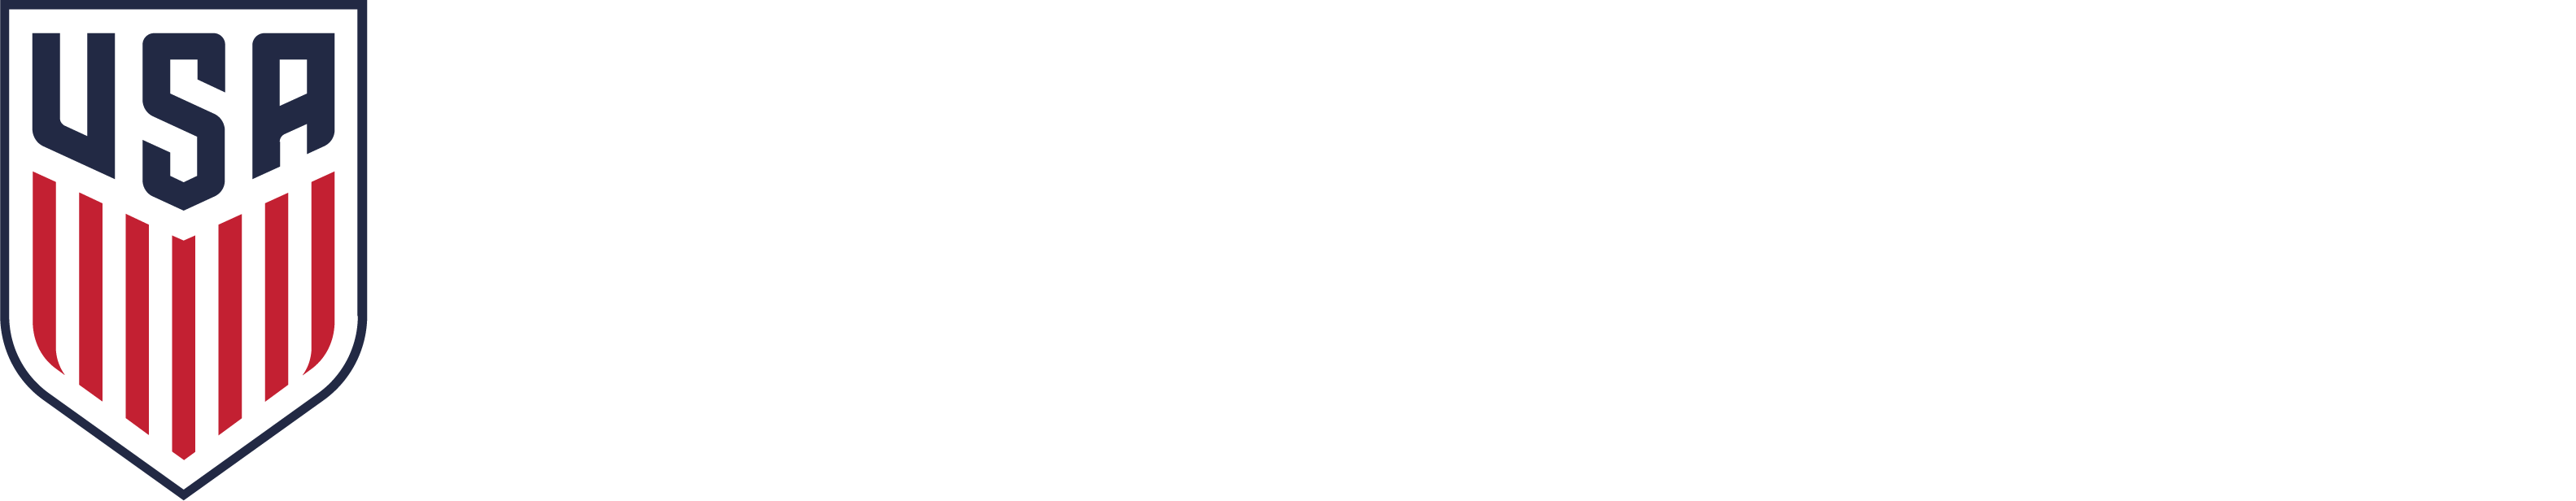 us soccer connect